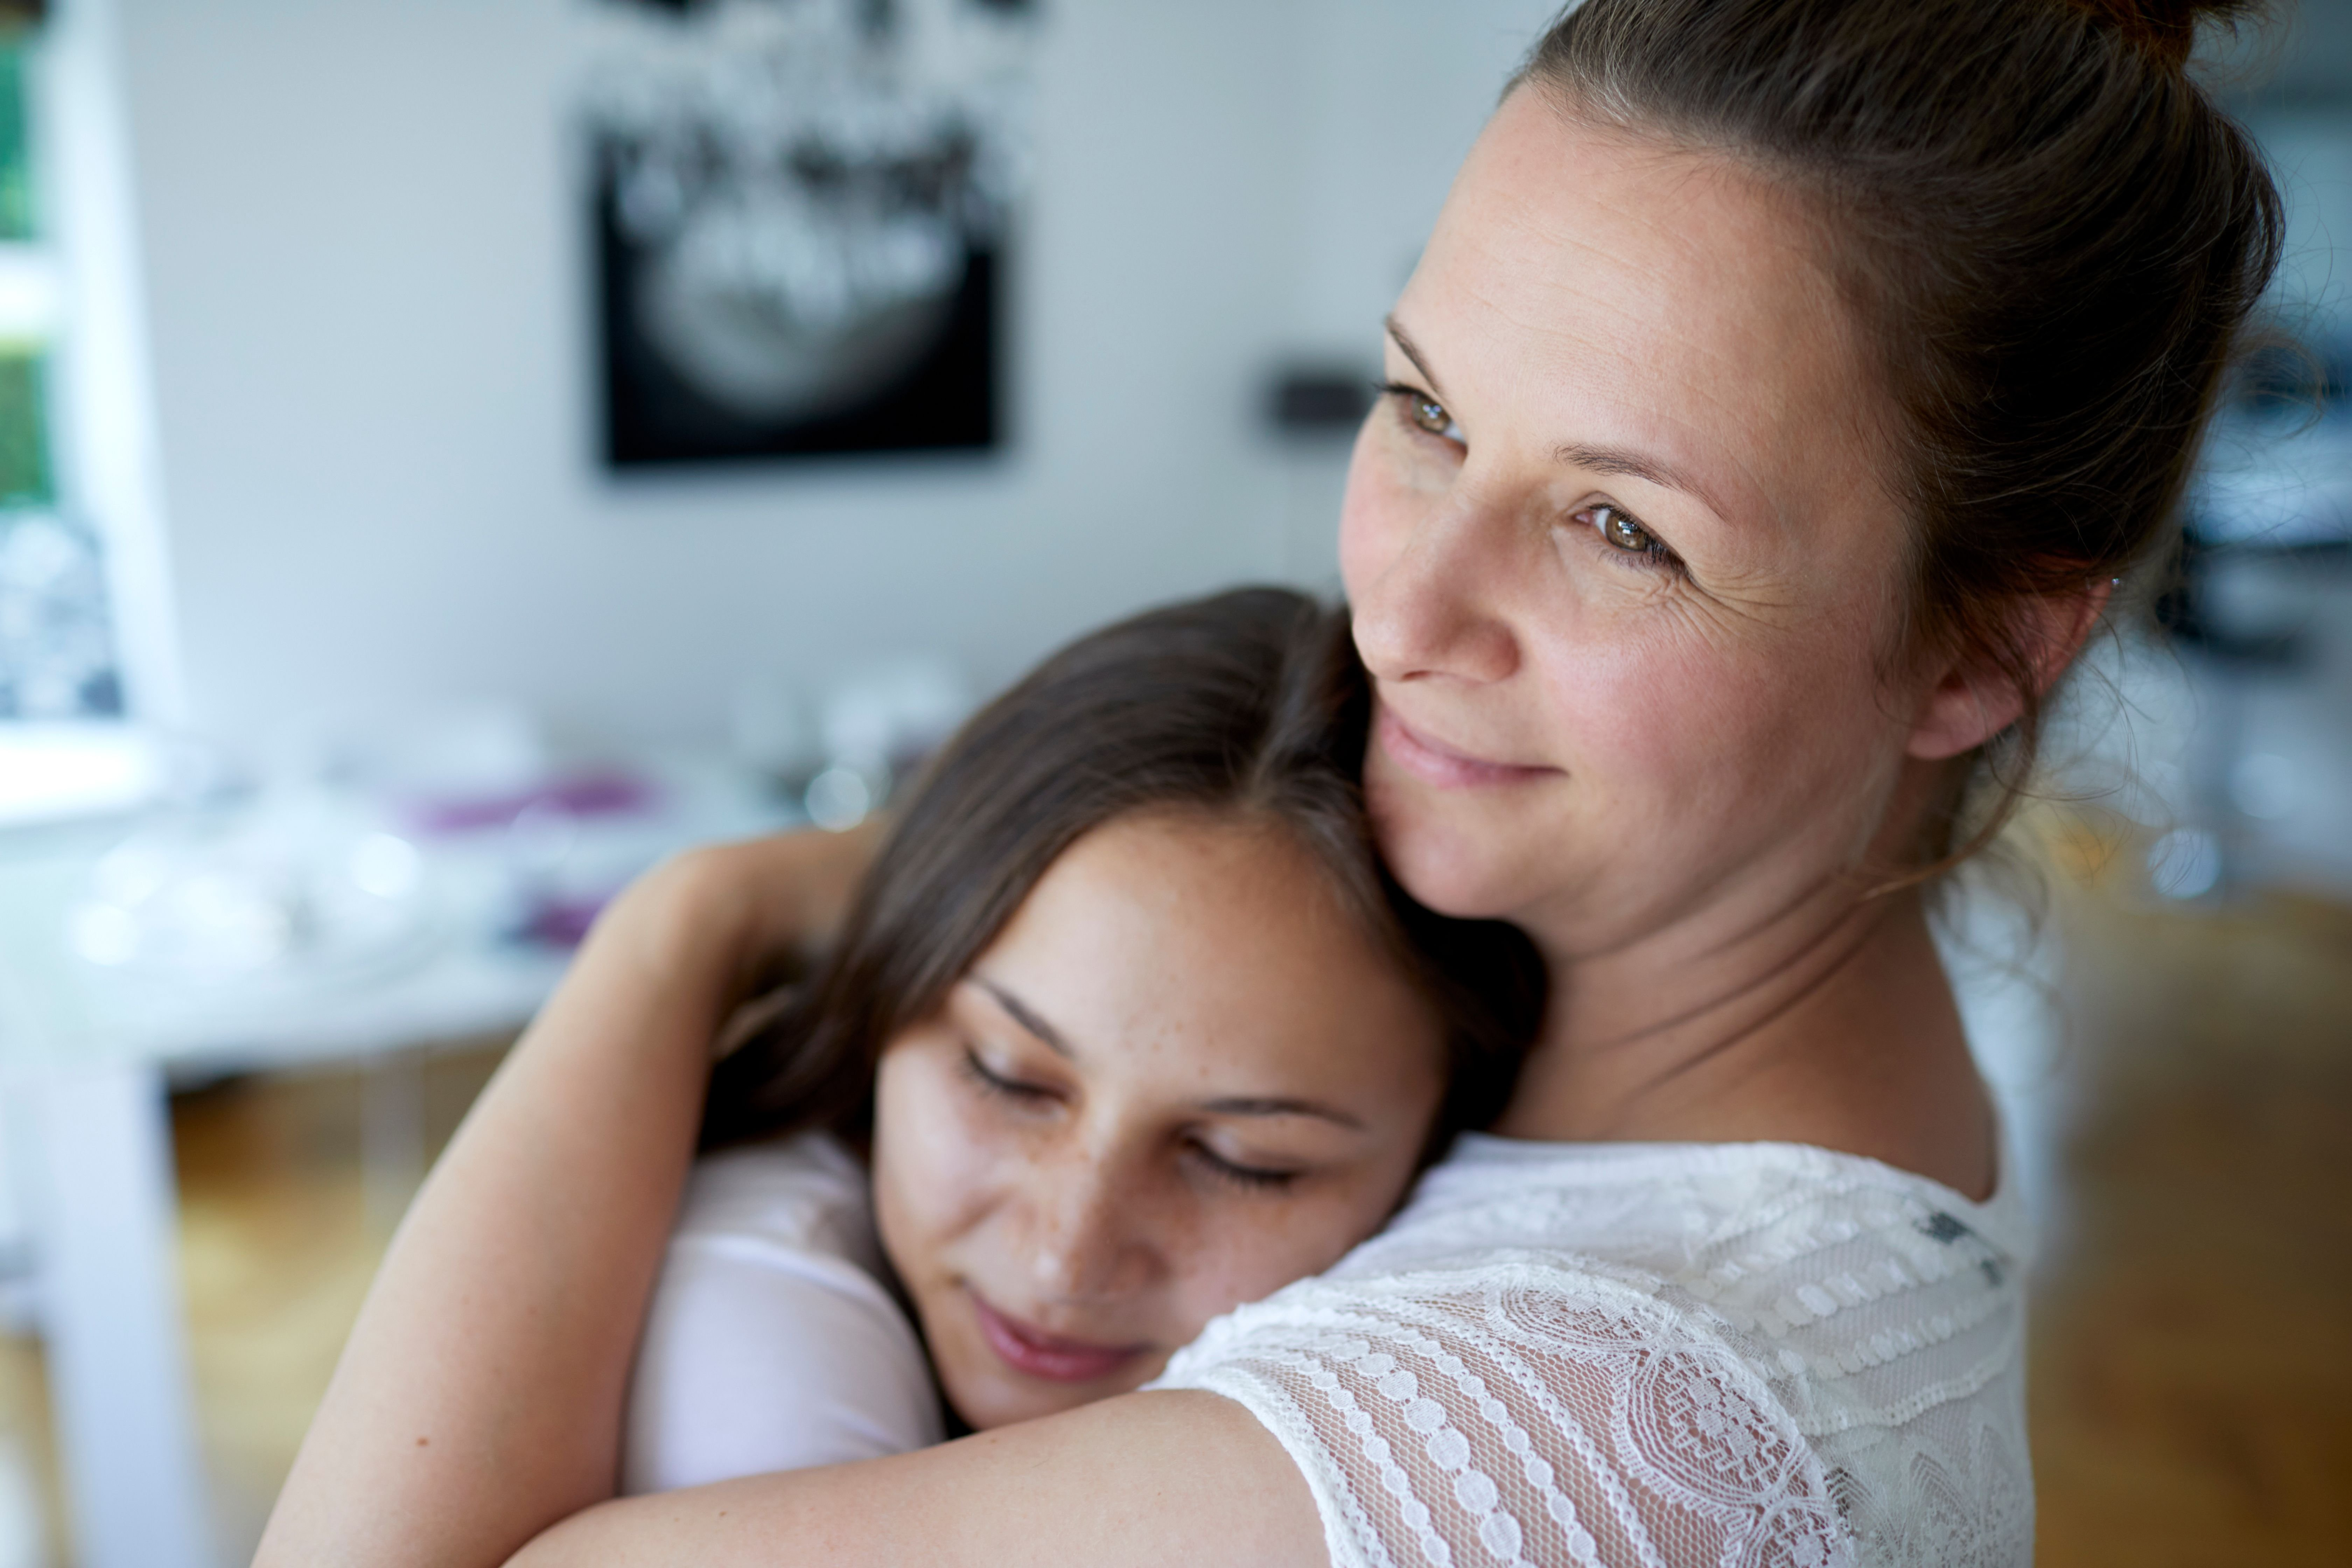 A mother and daughter hugging. | Source: Shutterstock